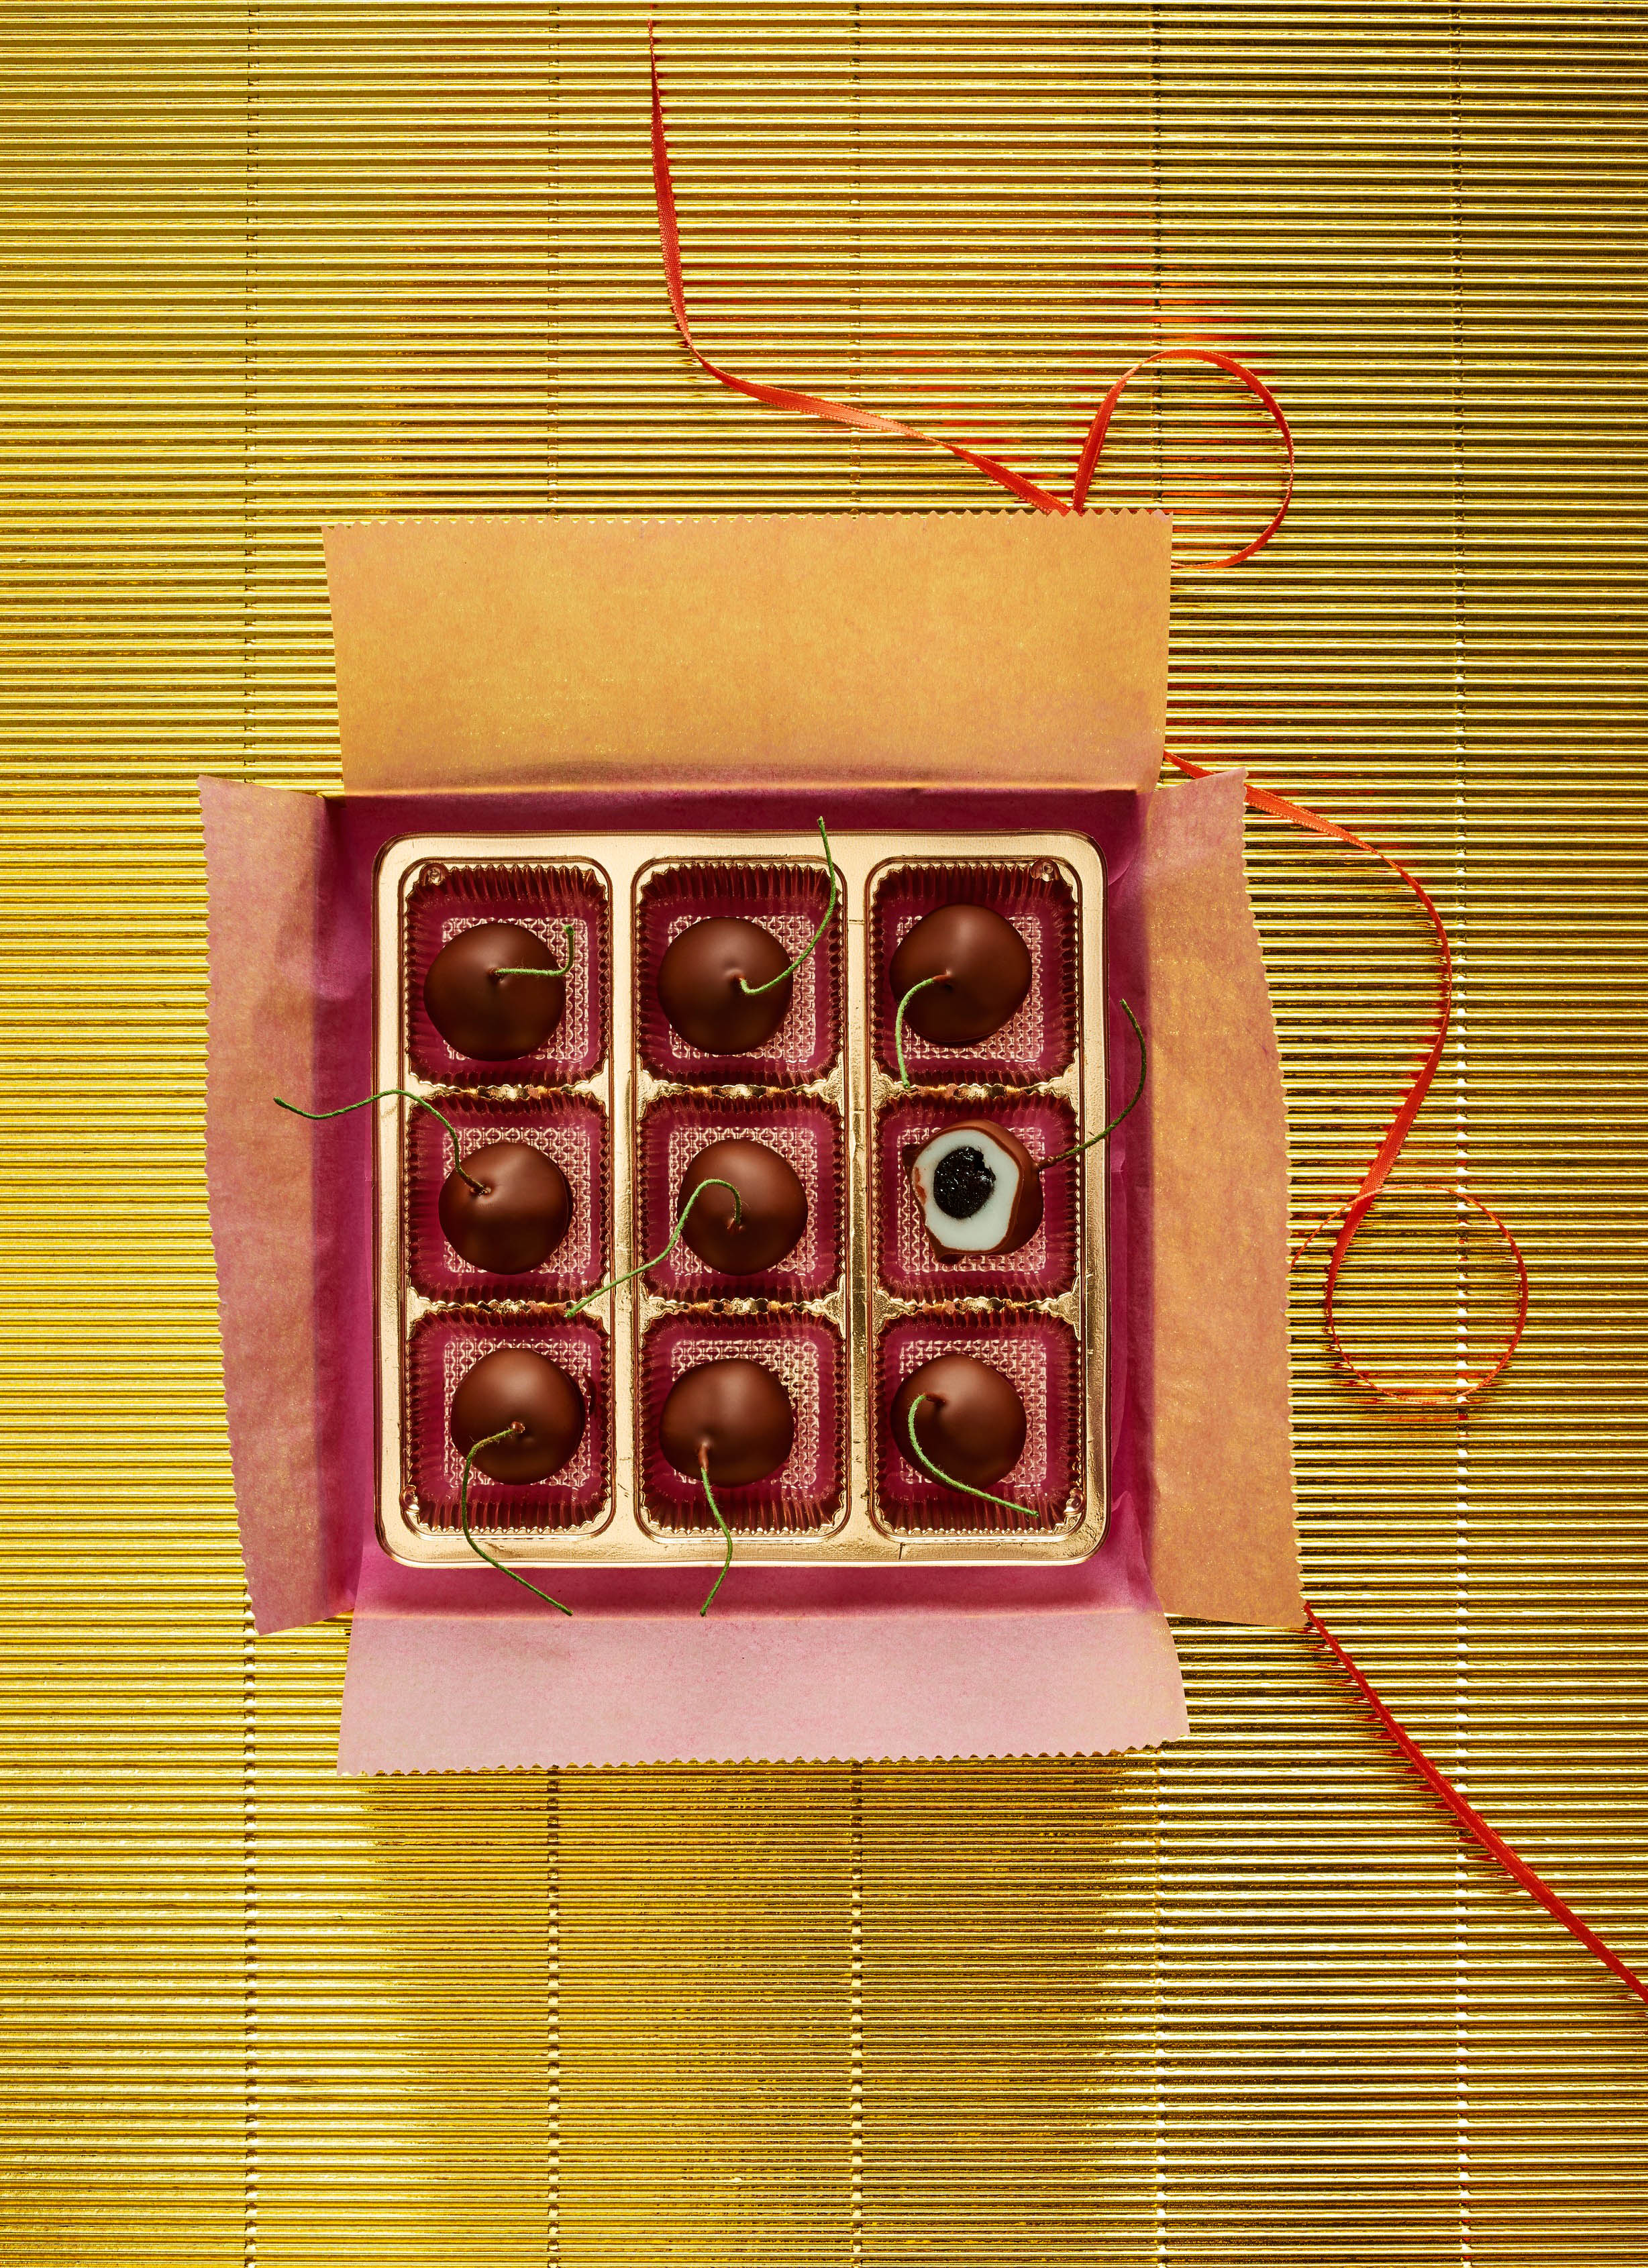 chocolates wrapping box chocolate covered cherries